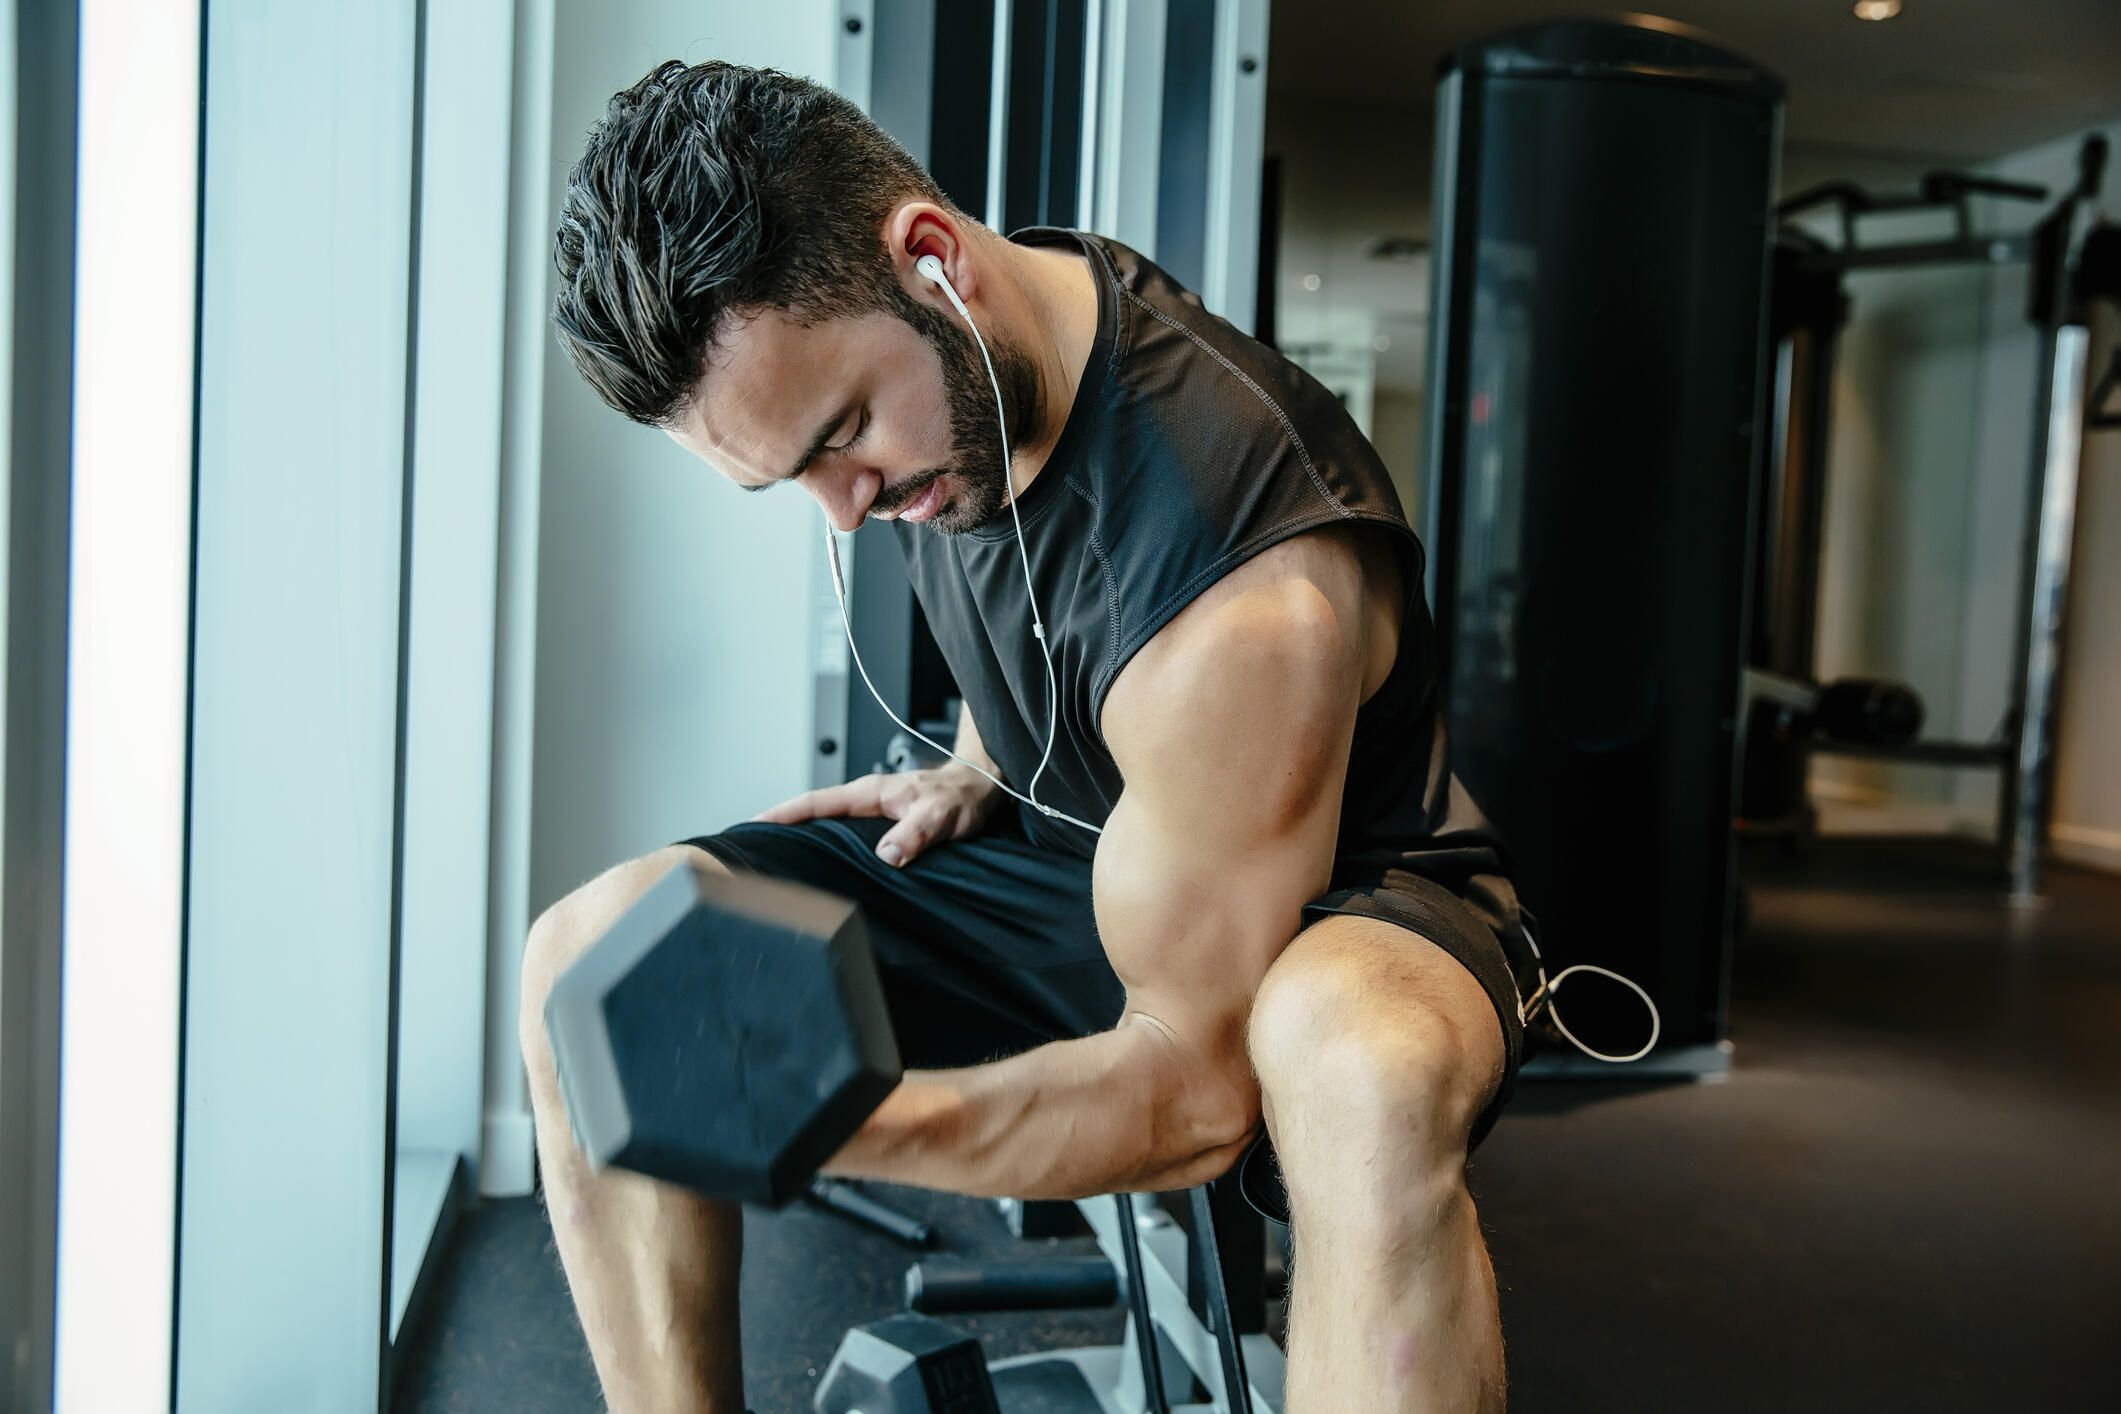 A young man performing bicep curls at the gym.